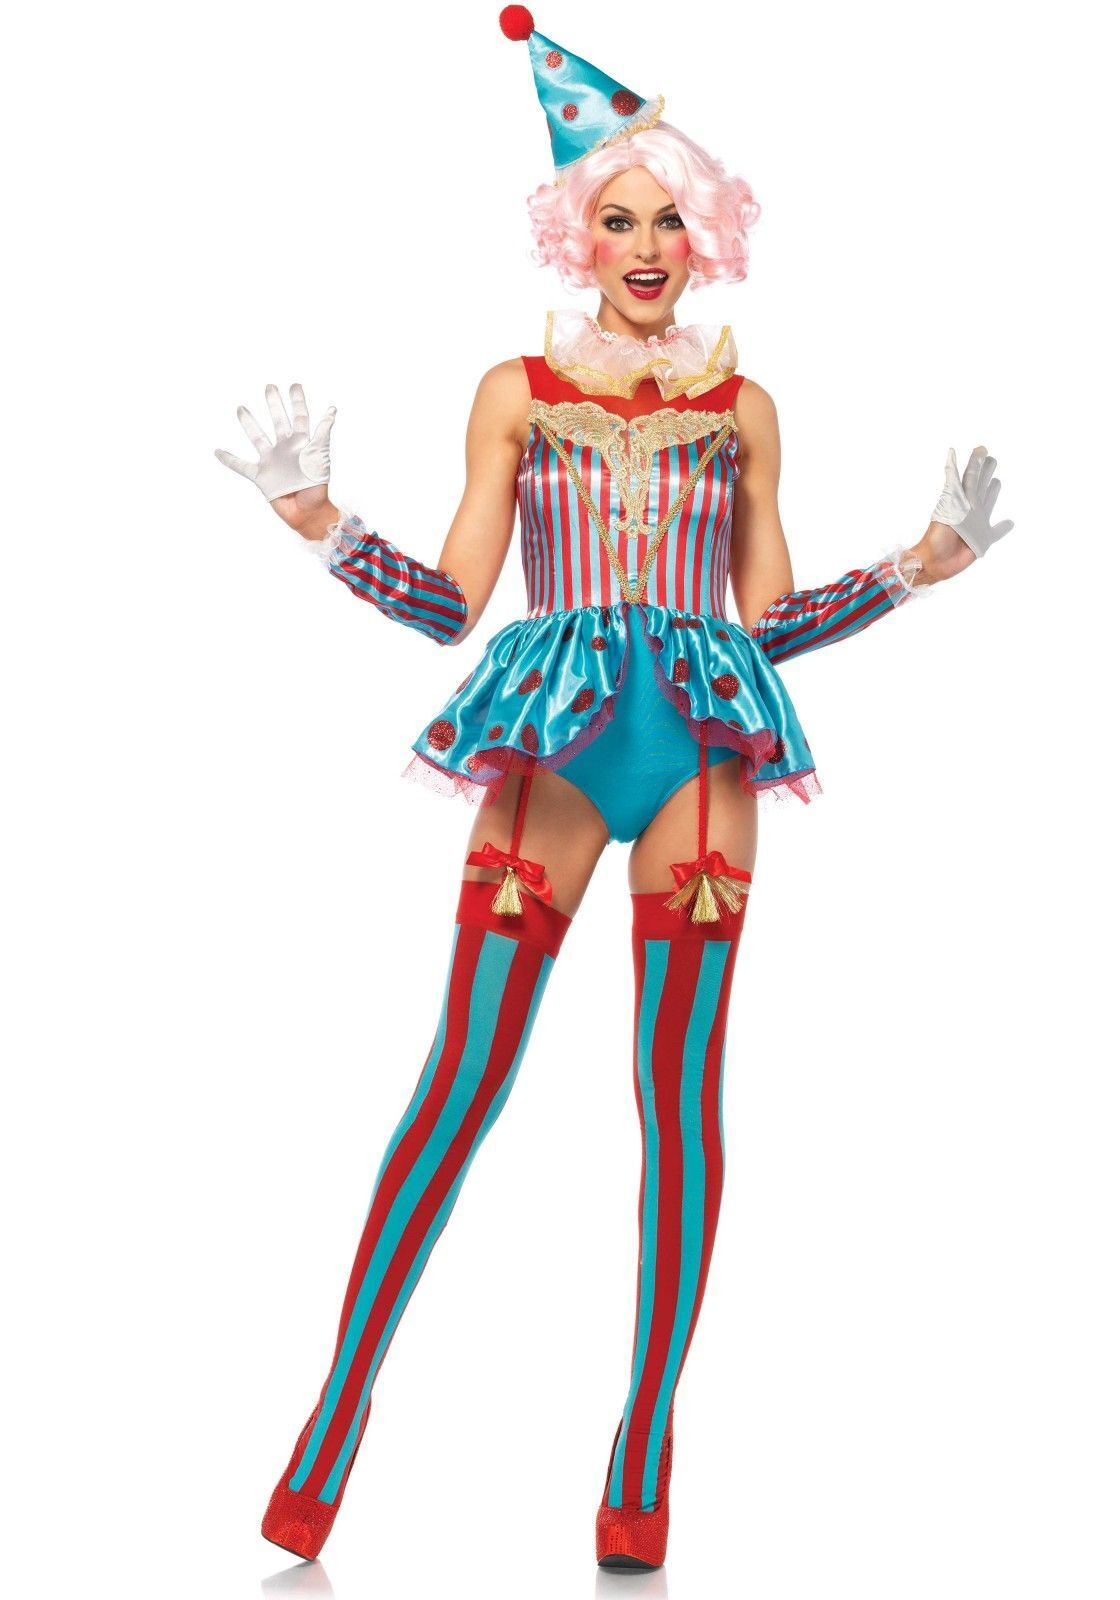 Delightful Circus Clown